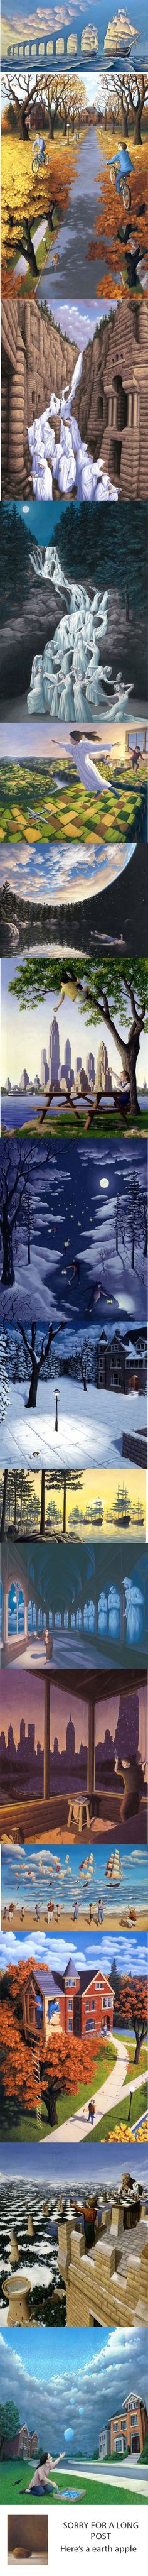 of Canadian artist's Rob Gonsalves artwork. Some of Canadian artist's Rob Gonsalves artwork. - of Canadian artist's Rob Gonsalves artwork. Illusion Art, Illusion Paintings, Illusion Pics, Illusion Drawings, Wow Art, Canadian Artists, Art Plastique, Optical Illusions, Funny Illusions